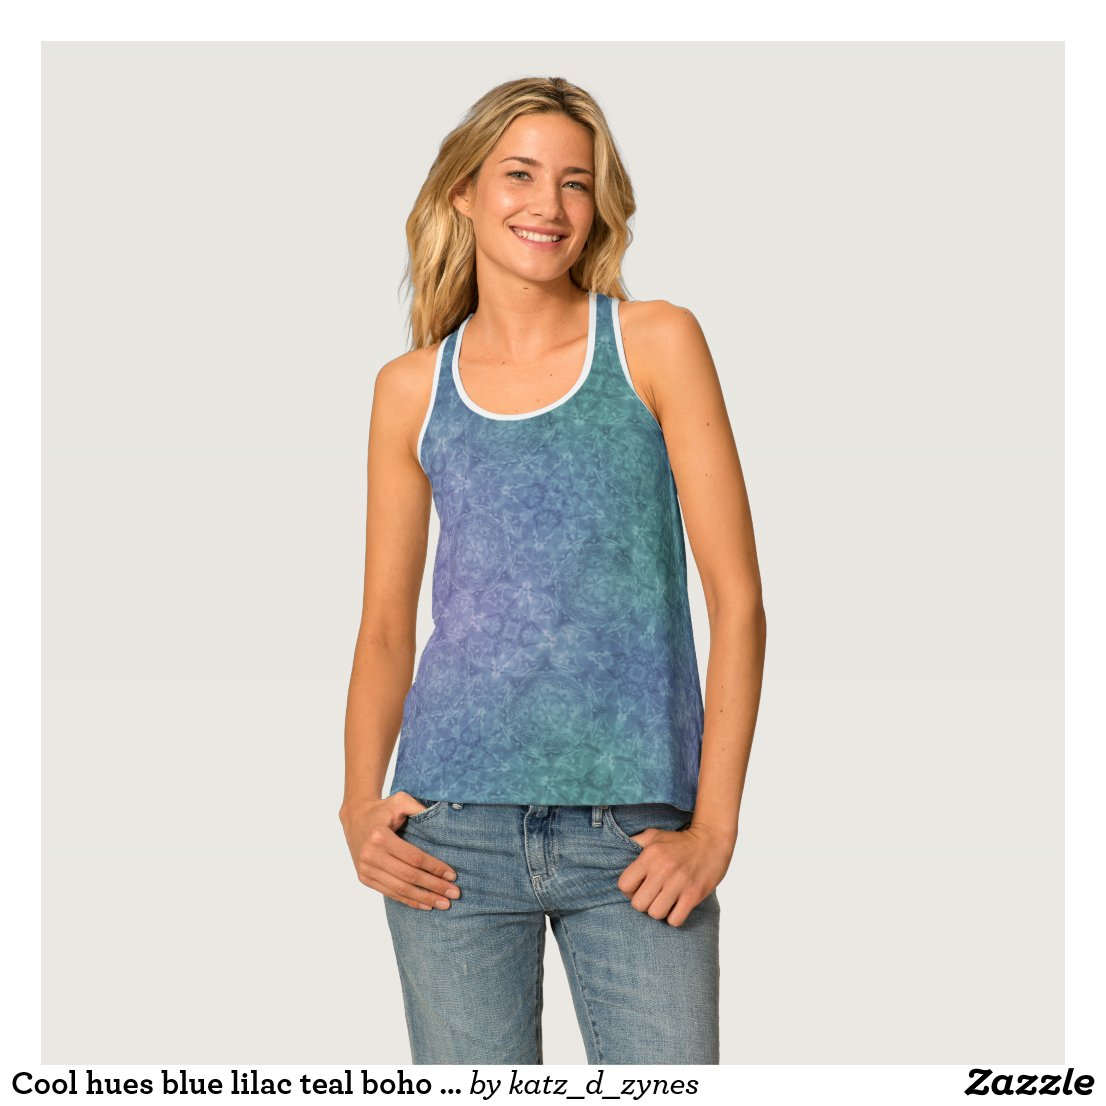 Cool hues blue lilac teal boho style pattern tank top